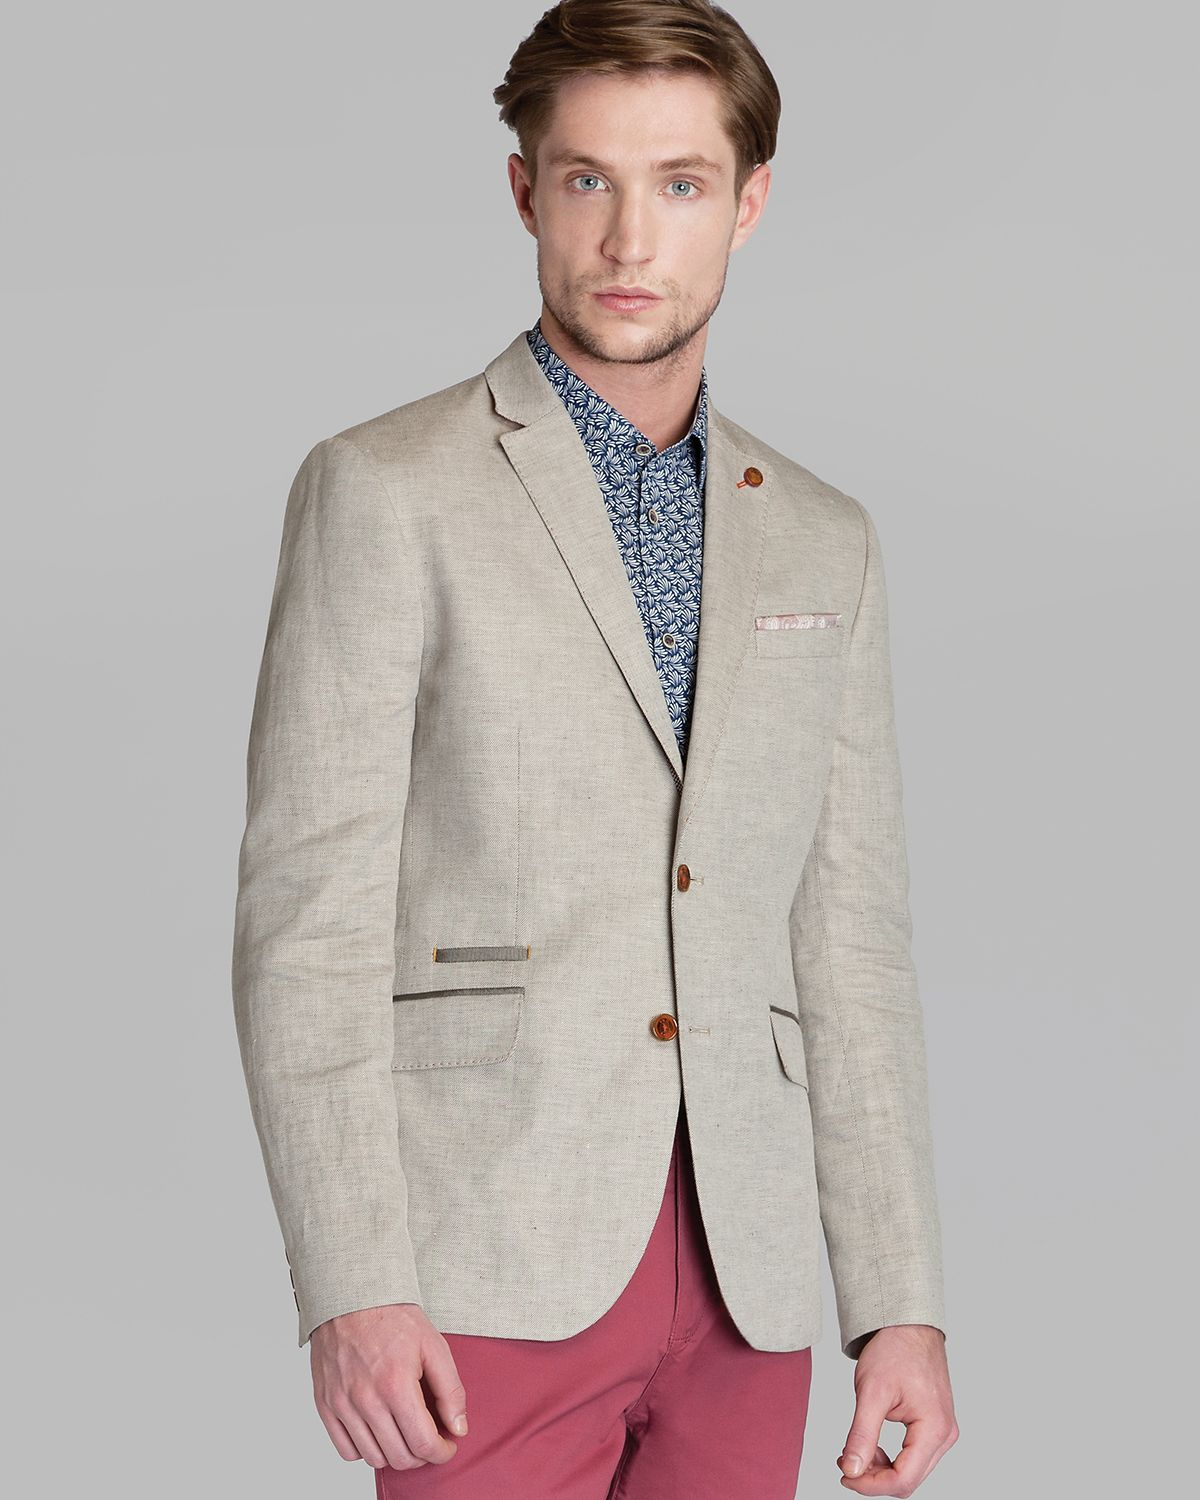 Ted baker Dainy Linen Blazer in Natural for Men | Lyst